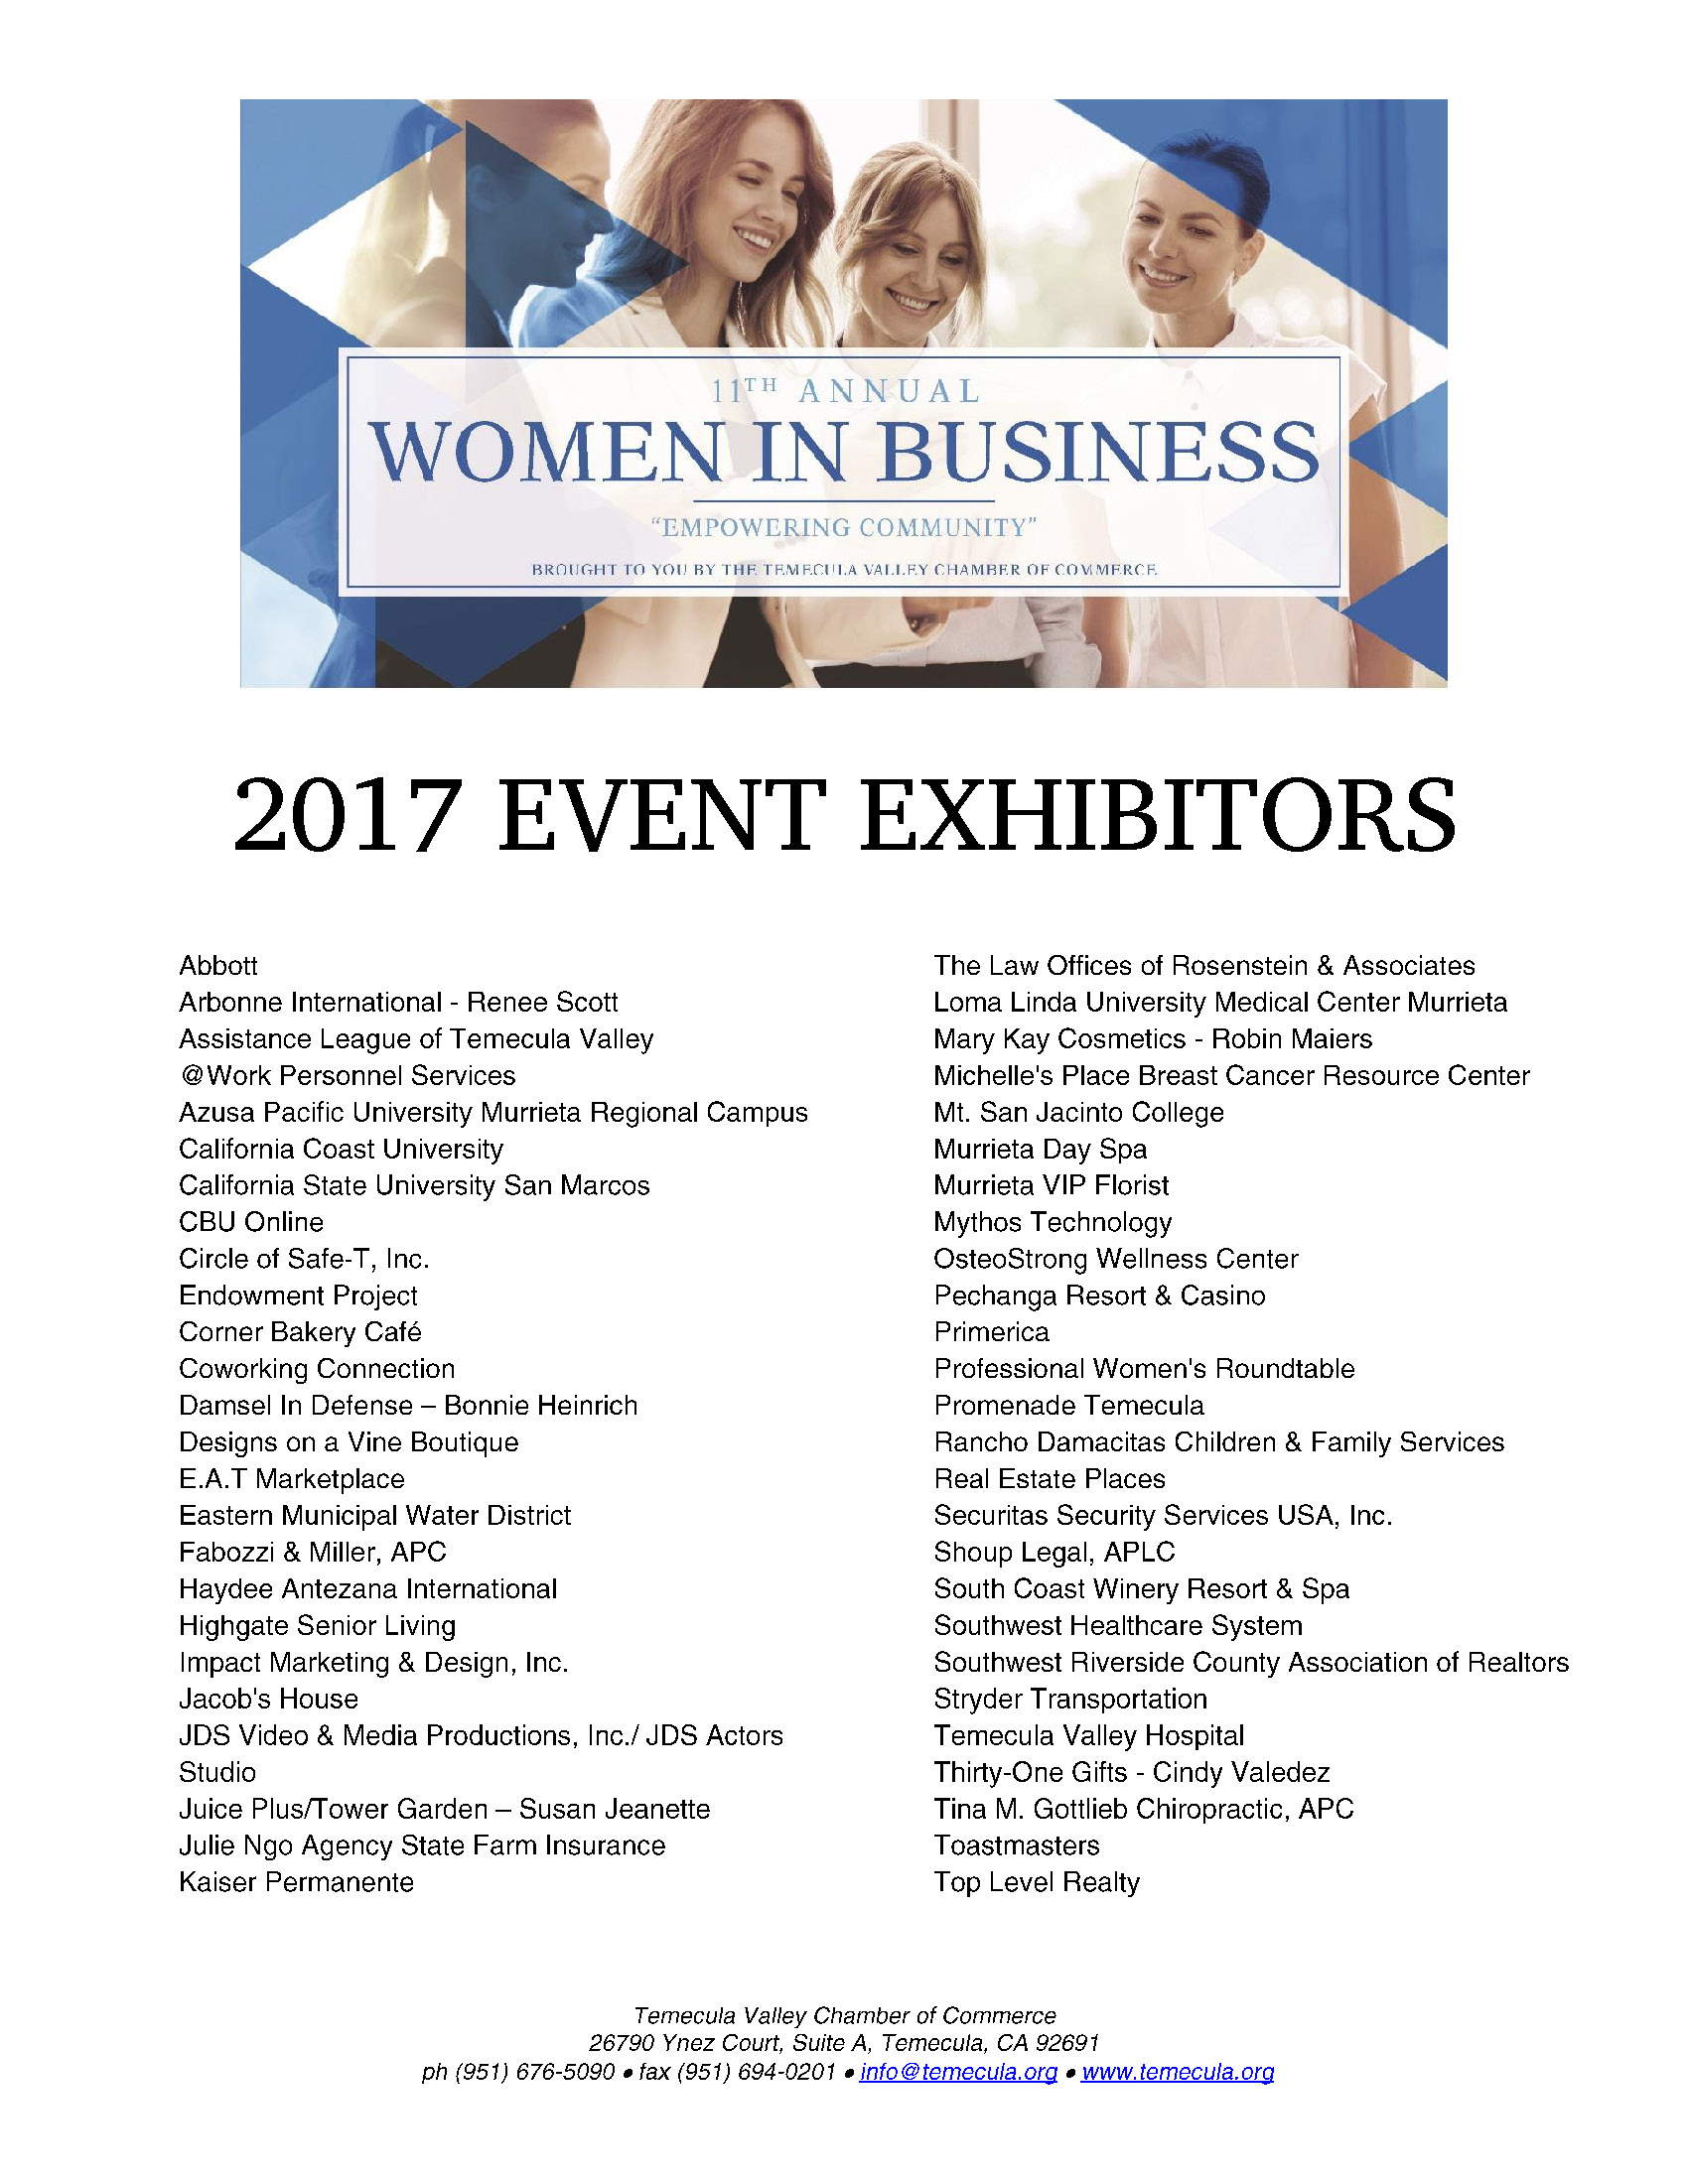 List of Exhibitors WIB 2017